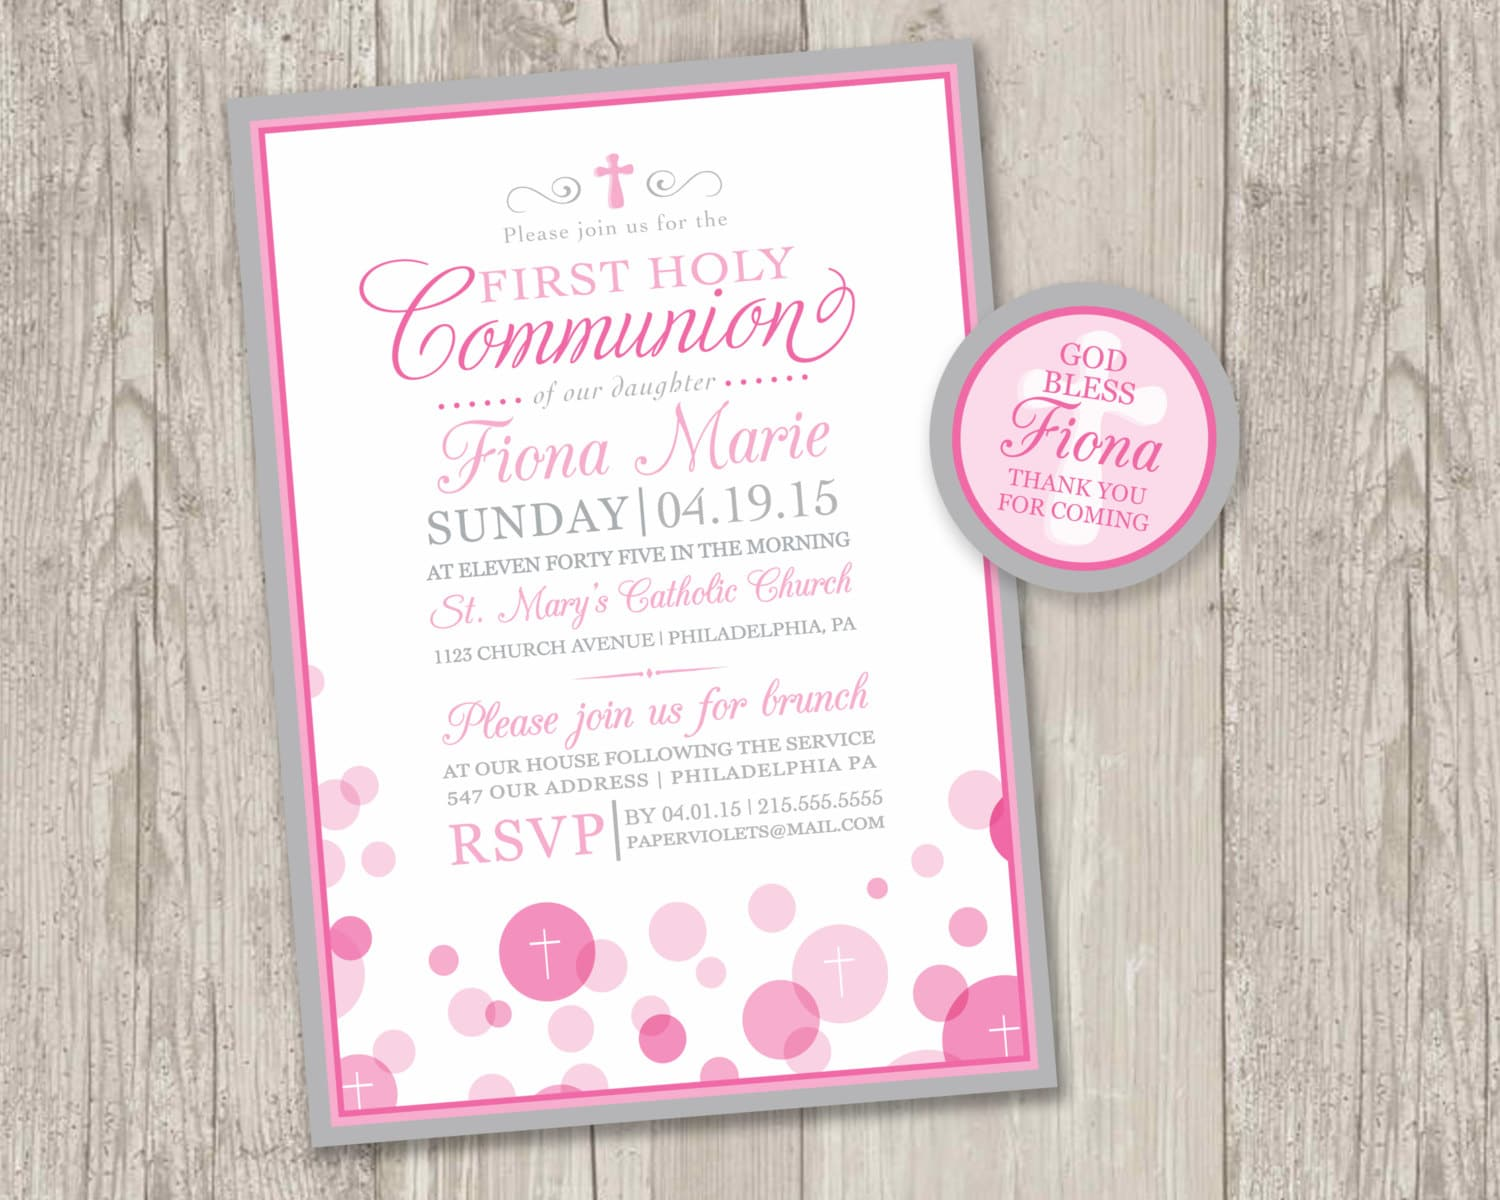 Punchy image intended for first communion invitations free printable